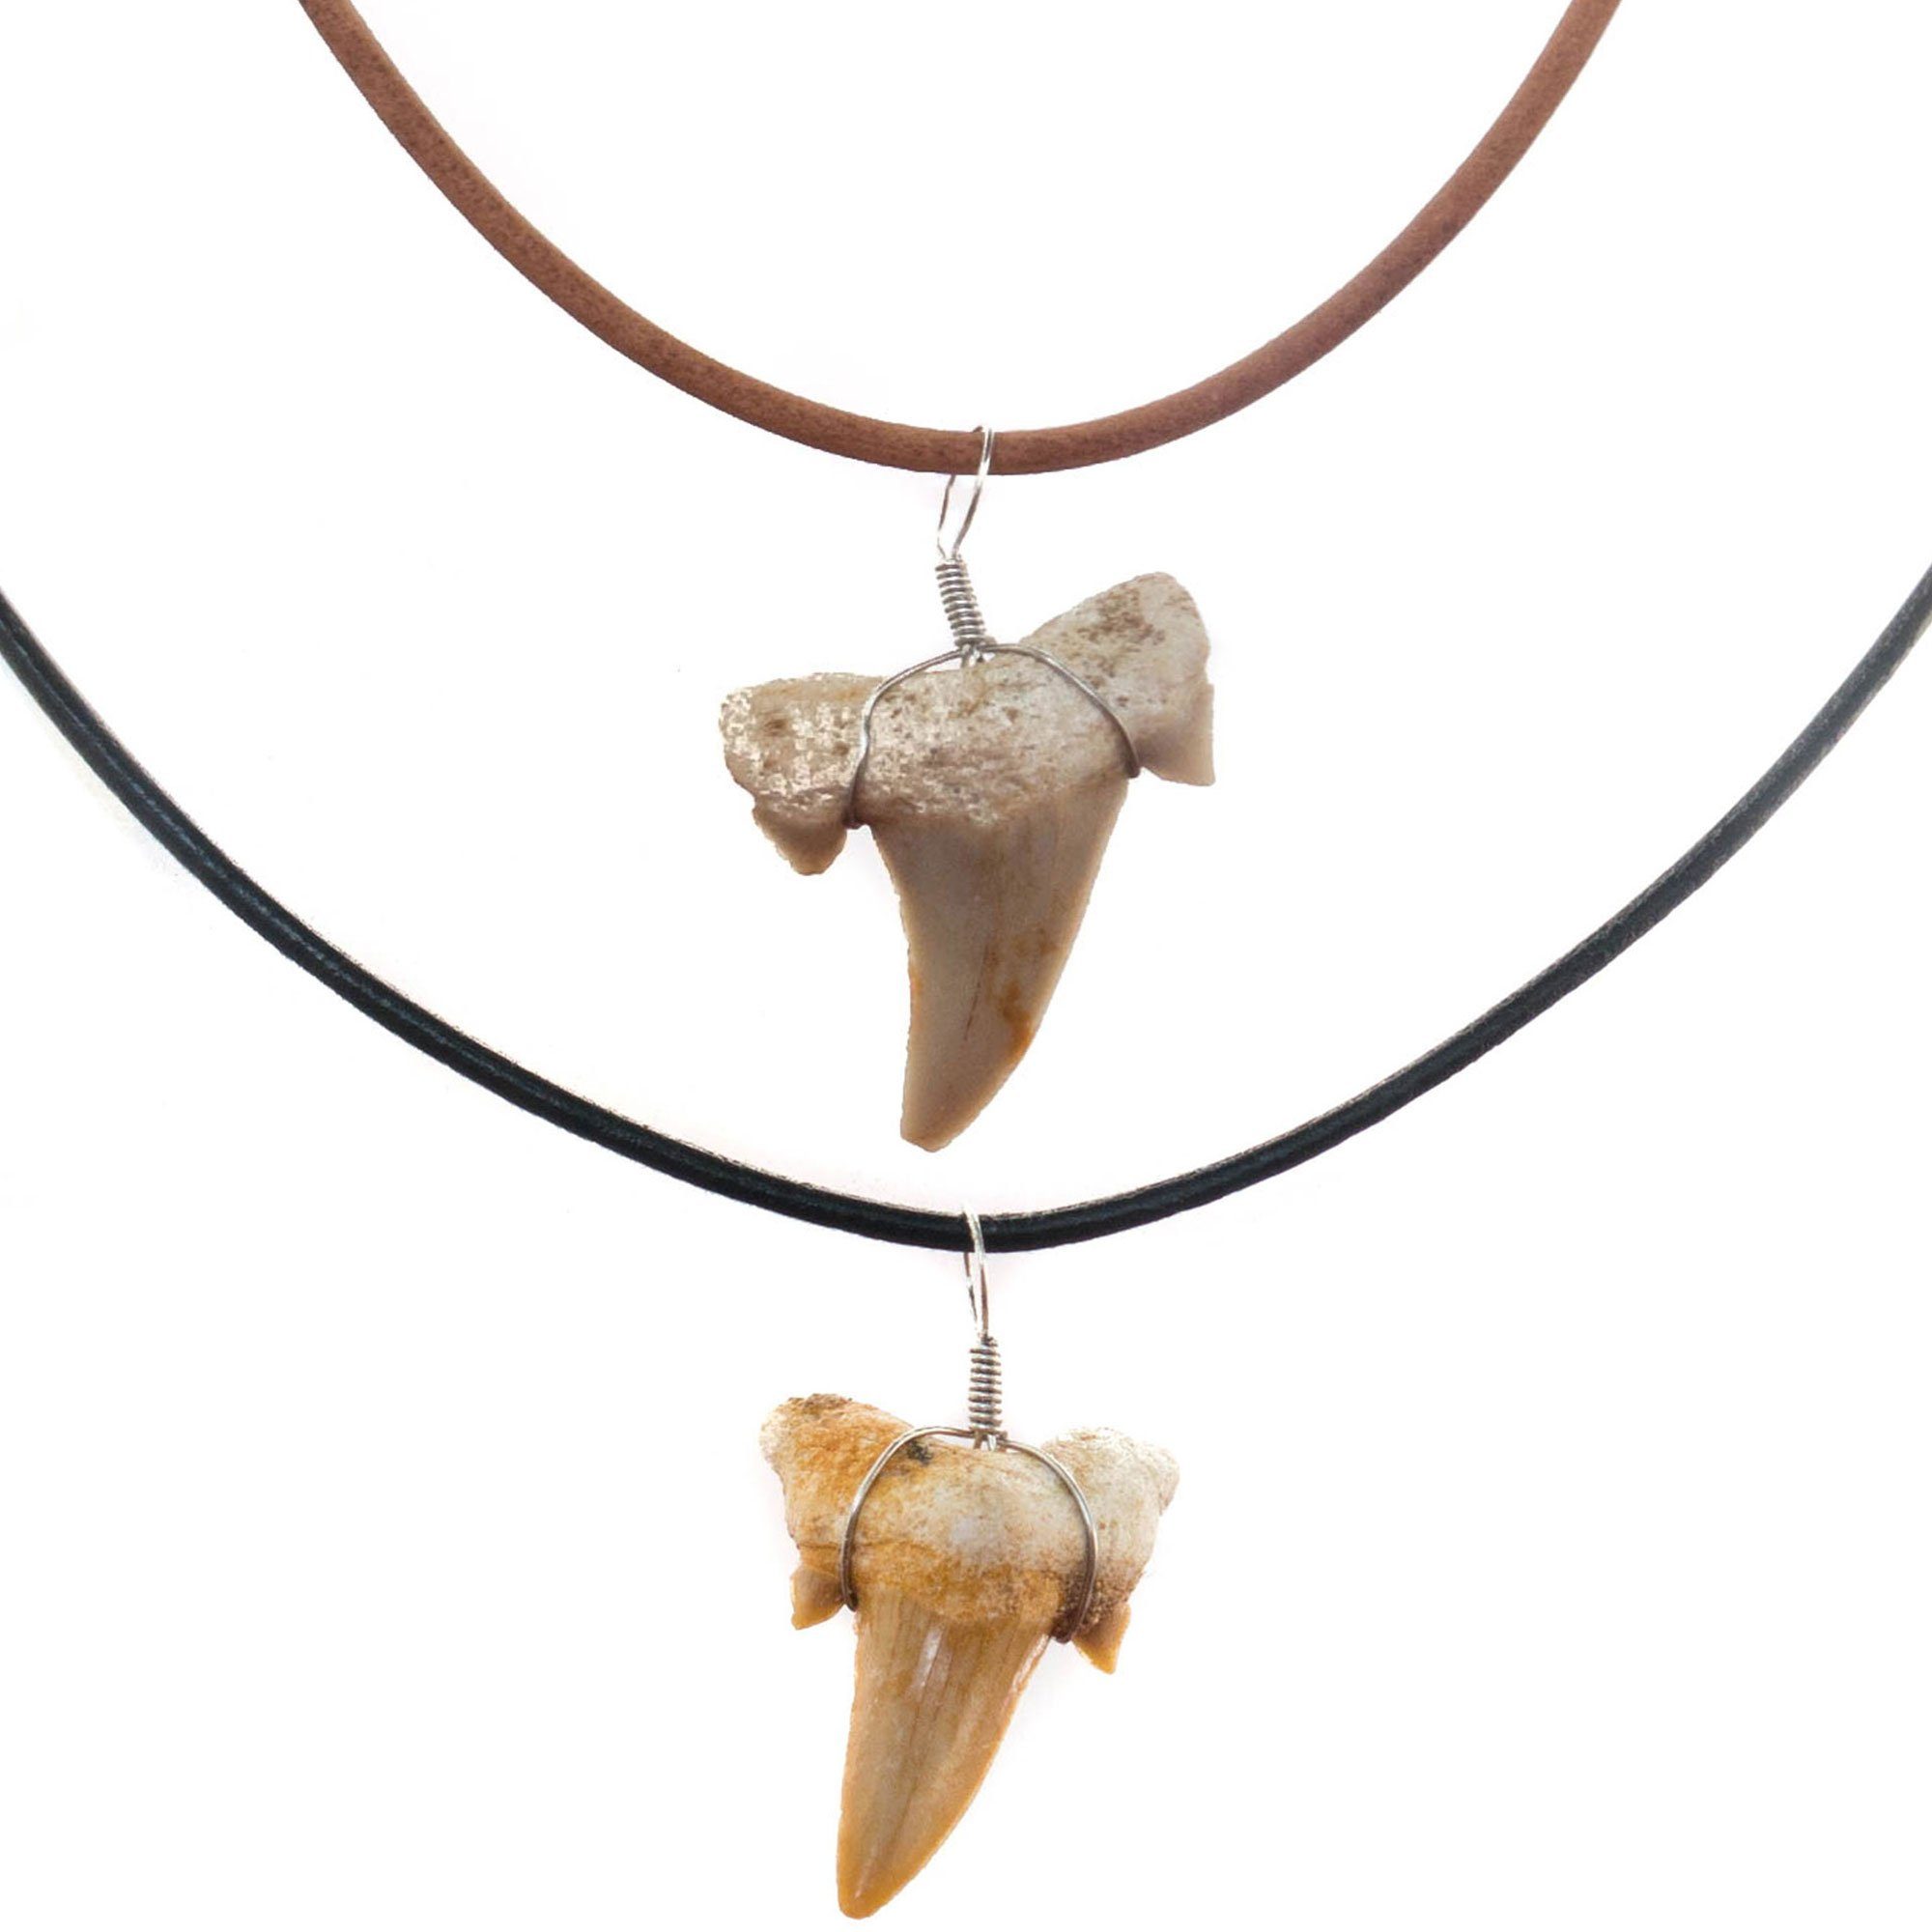 FROG SAC Real Shark Tooth Necklace for Men Boys Teens Kids (2 Pieces) Genuine Fossil Shark Tooth Pendant on Greek Leather Necklace – Mens Classic Surfer Necklace - Fashion Jewelry by (NATURAL/BROWN)